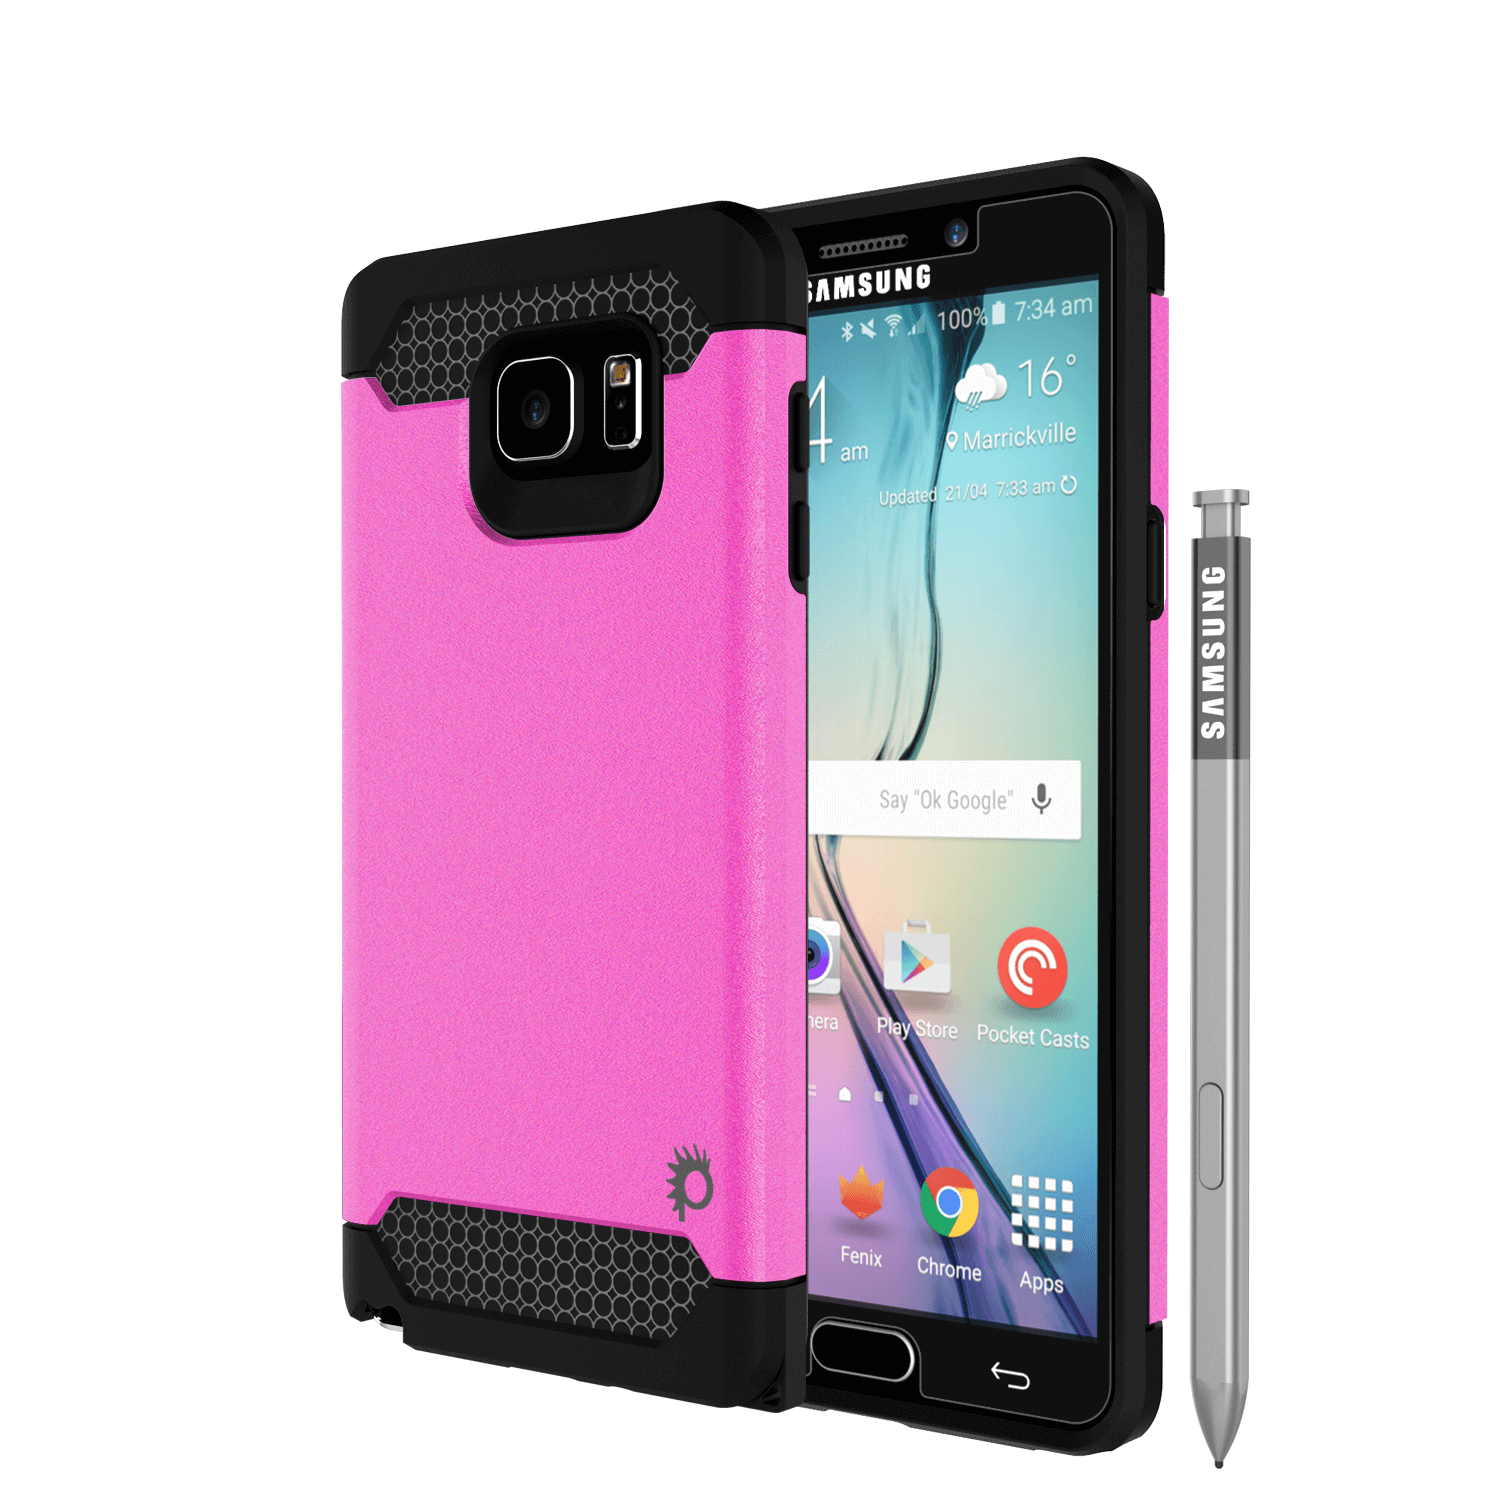 Galaxy Note 5Case PunkCase Galactic Pink Series Slim Protective Armor Soft Cover Case w/ Tempered Glass Protector Lifetime Warranty